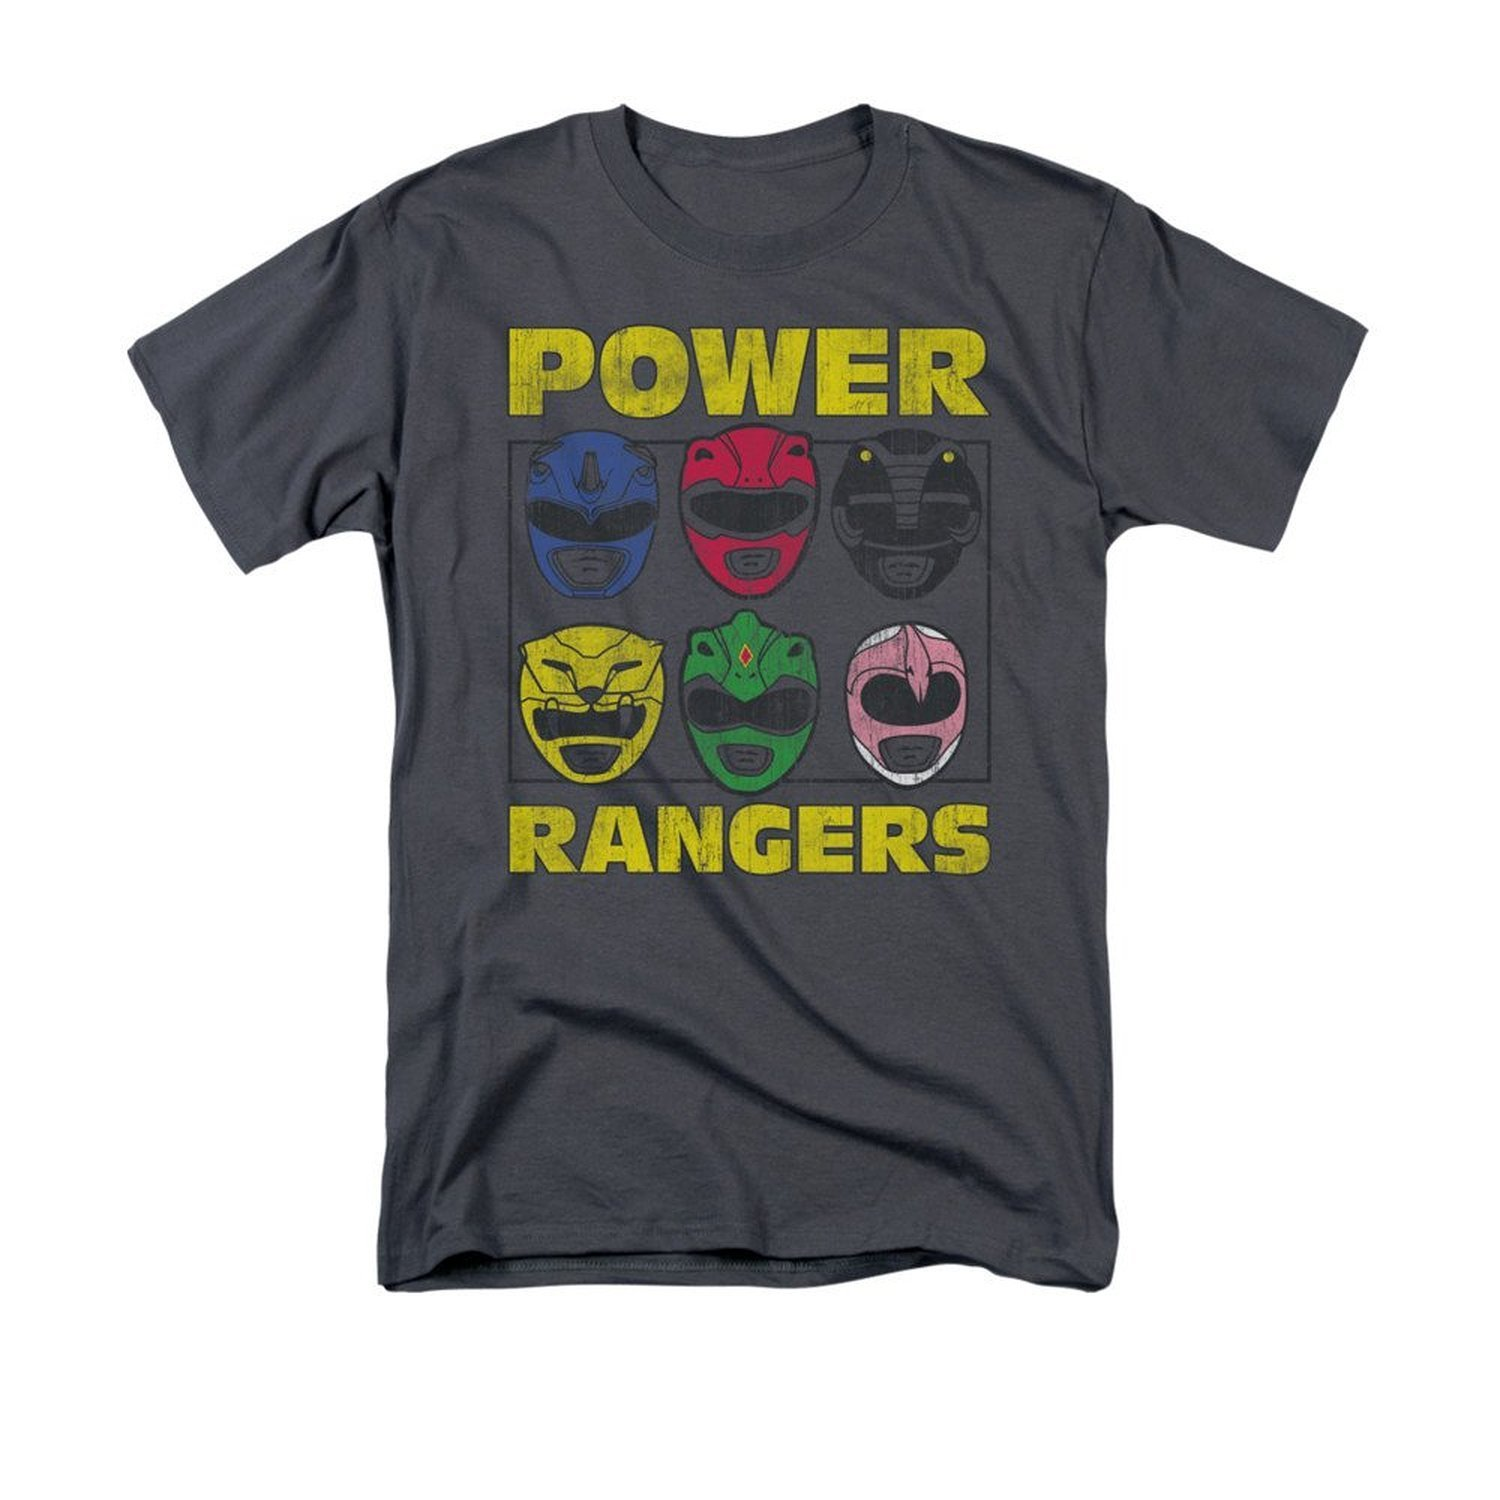 Tops T Shirts Baby Toddler Clothing Power Rangers Shirts